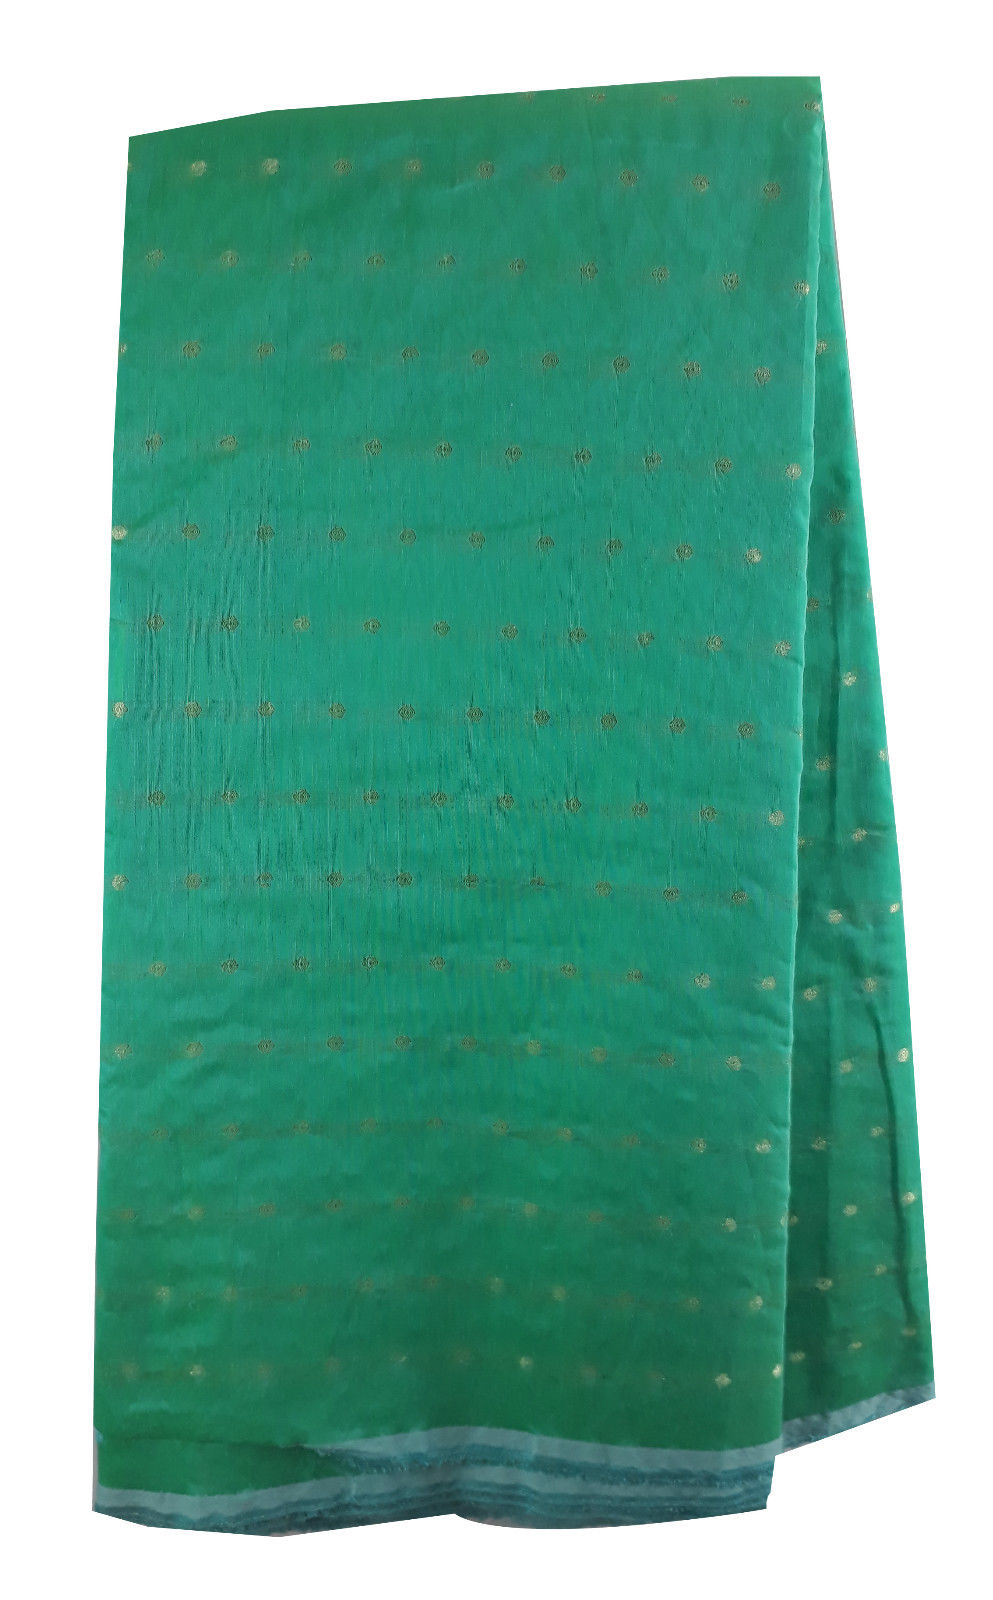 kurti fabric online embroidery dress material online shopping Chanderi Cotton Sea Green, Gold 42 inches Wide 1670